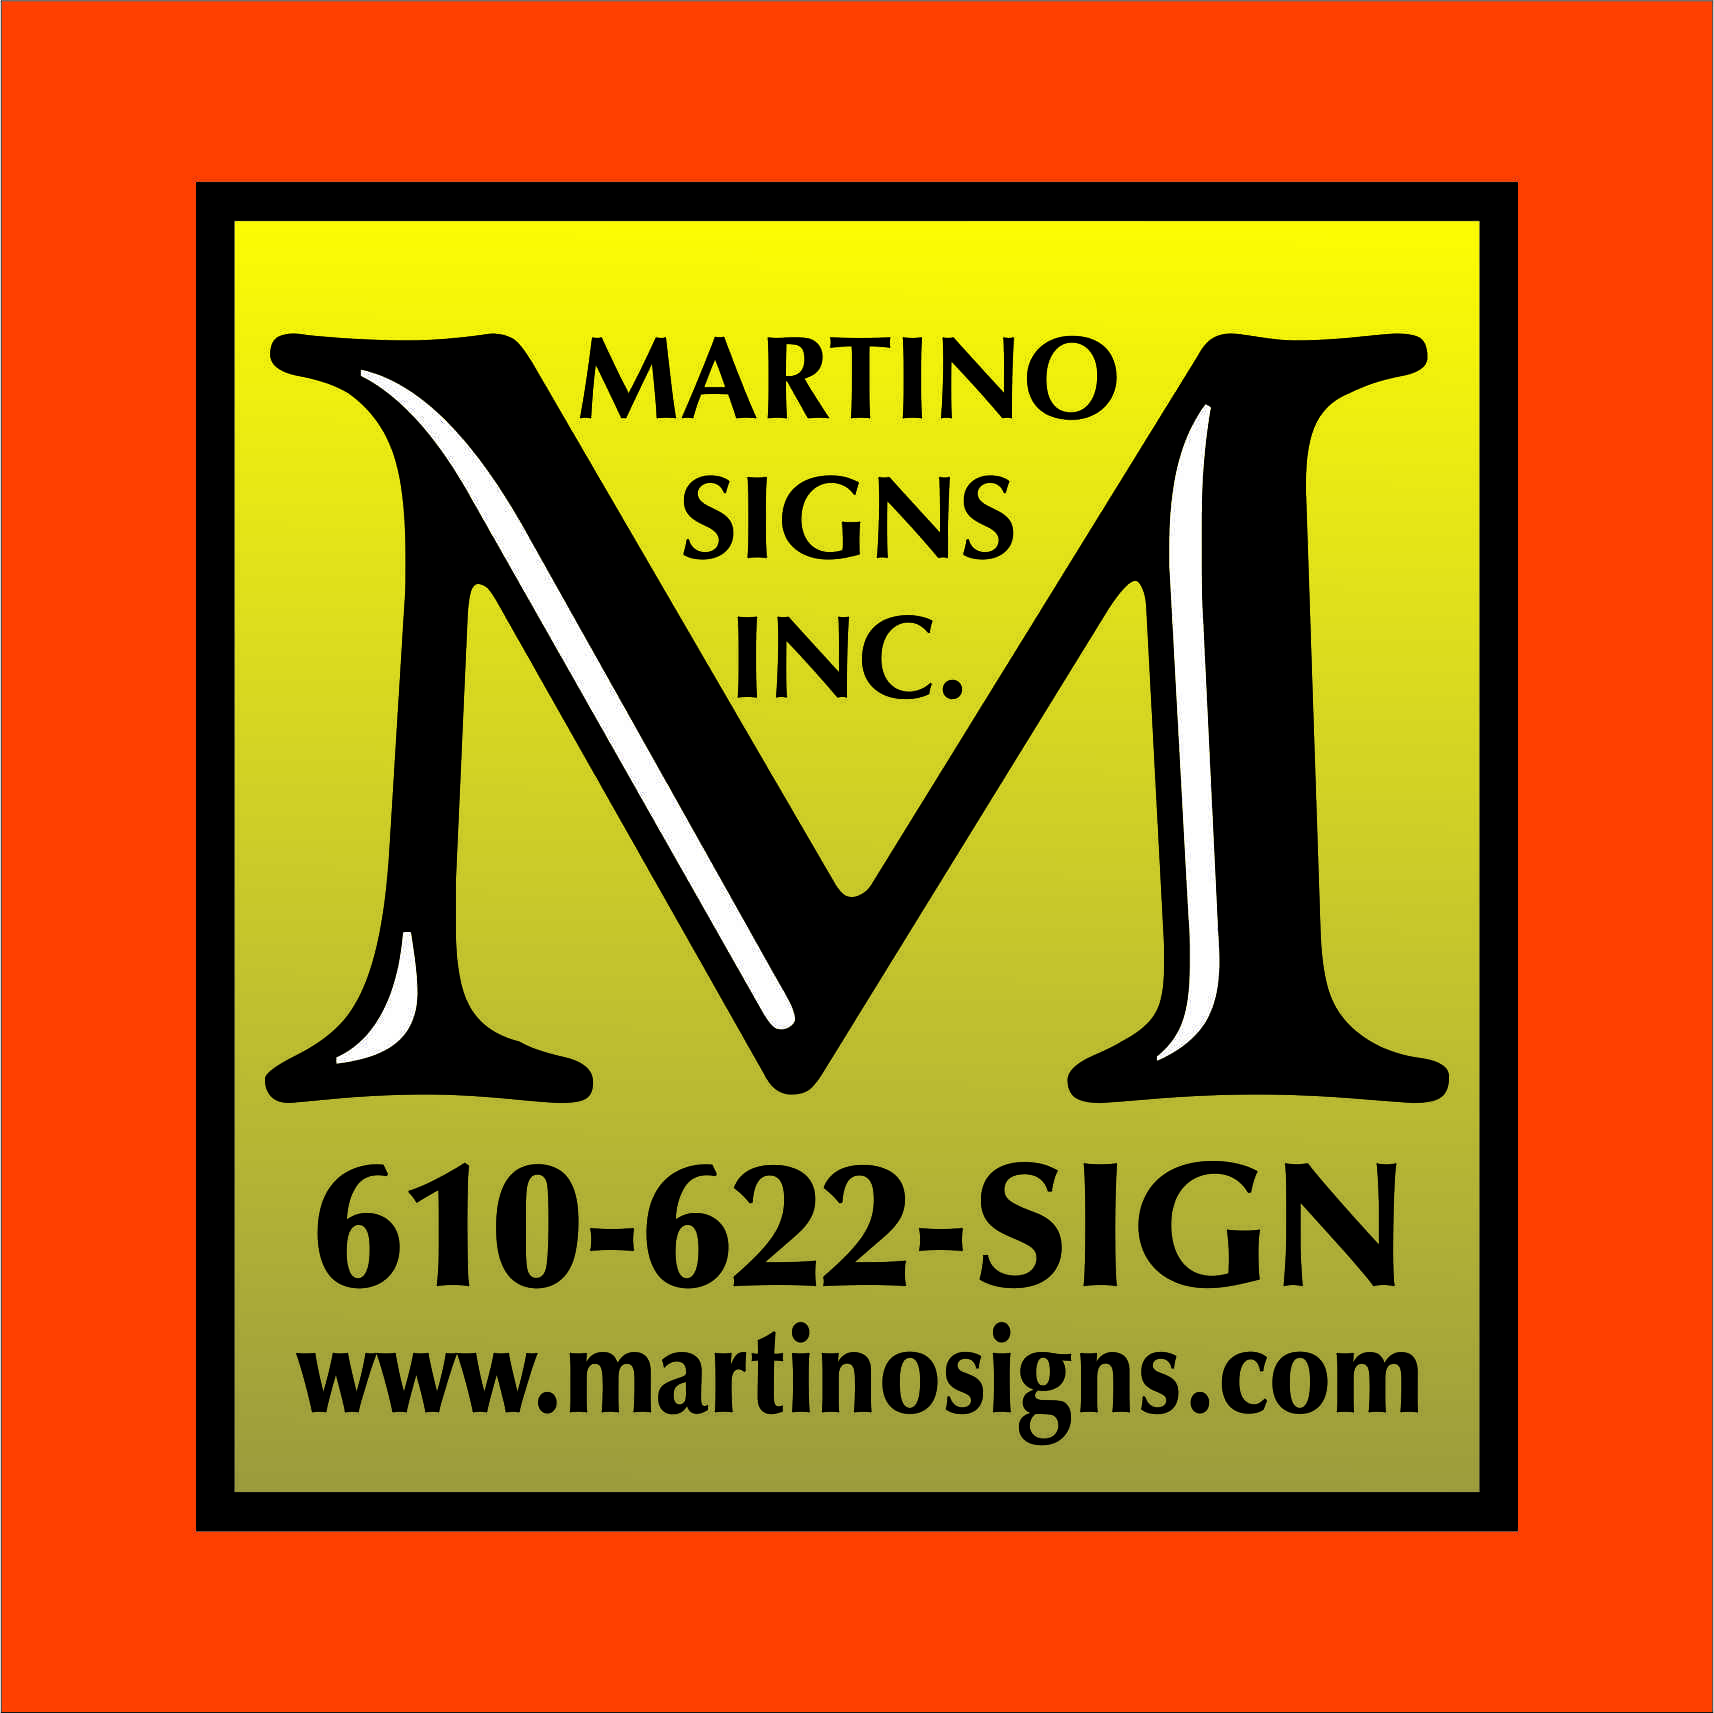 Martino Signs Inc